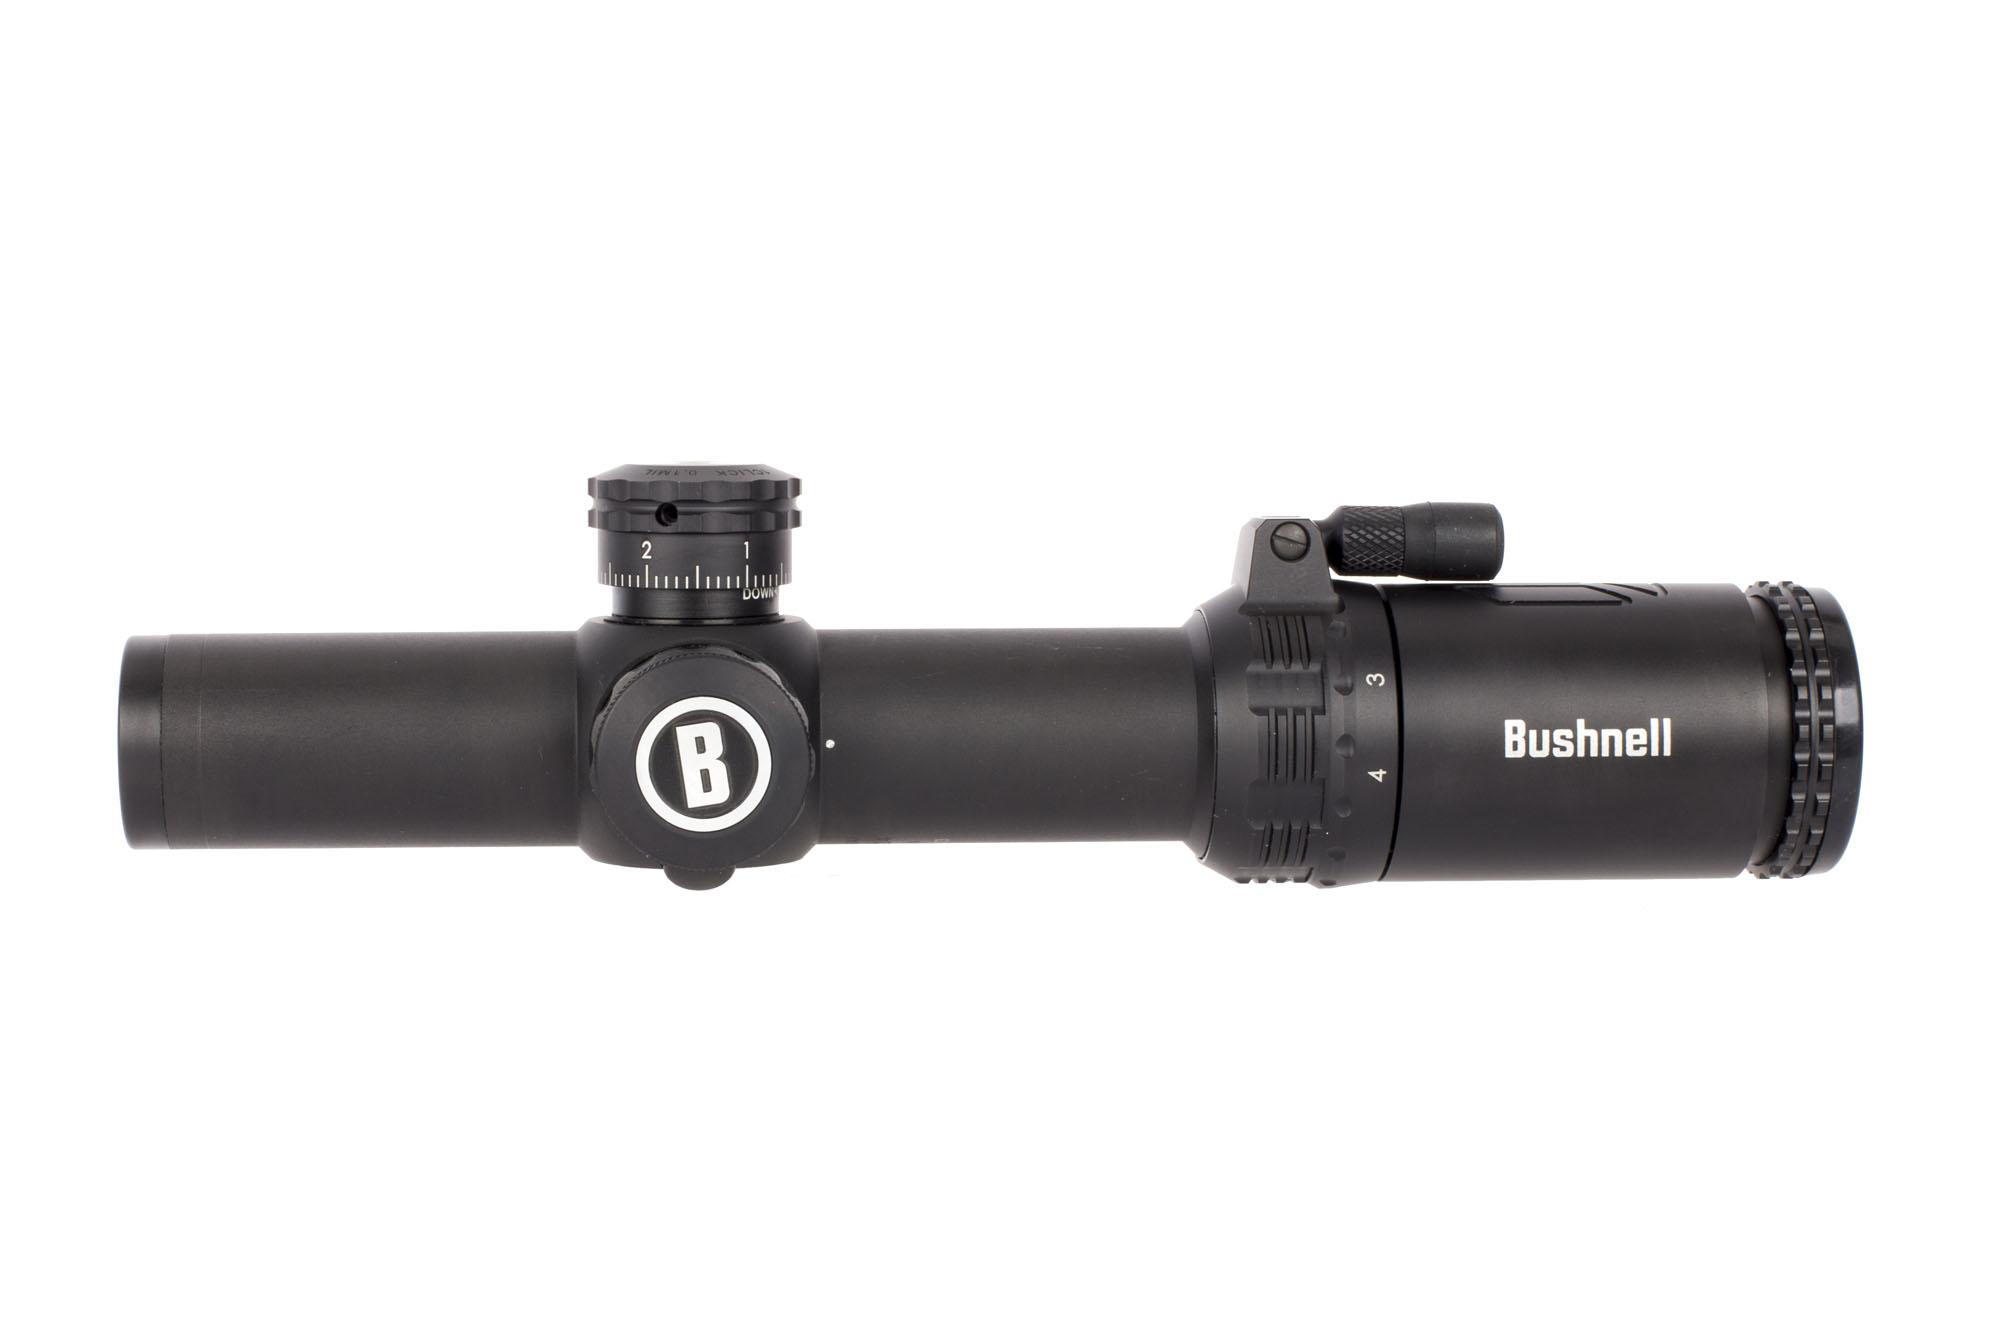 Bushnell AR Optics 1-4x24mm FFP Rifle Scope - Illuminated BTR-1 Reticle